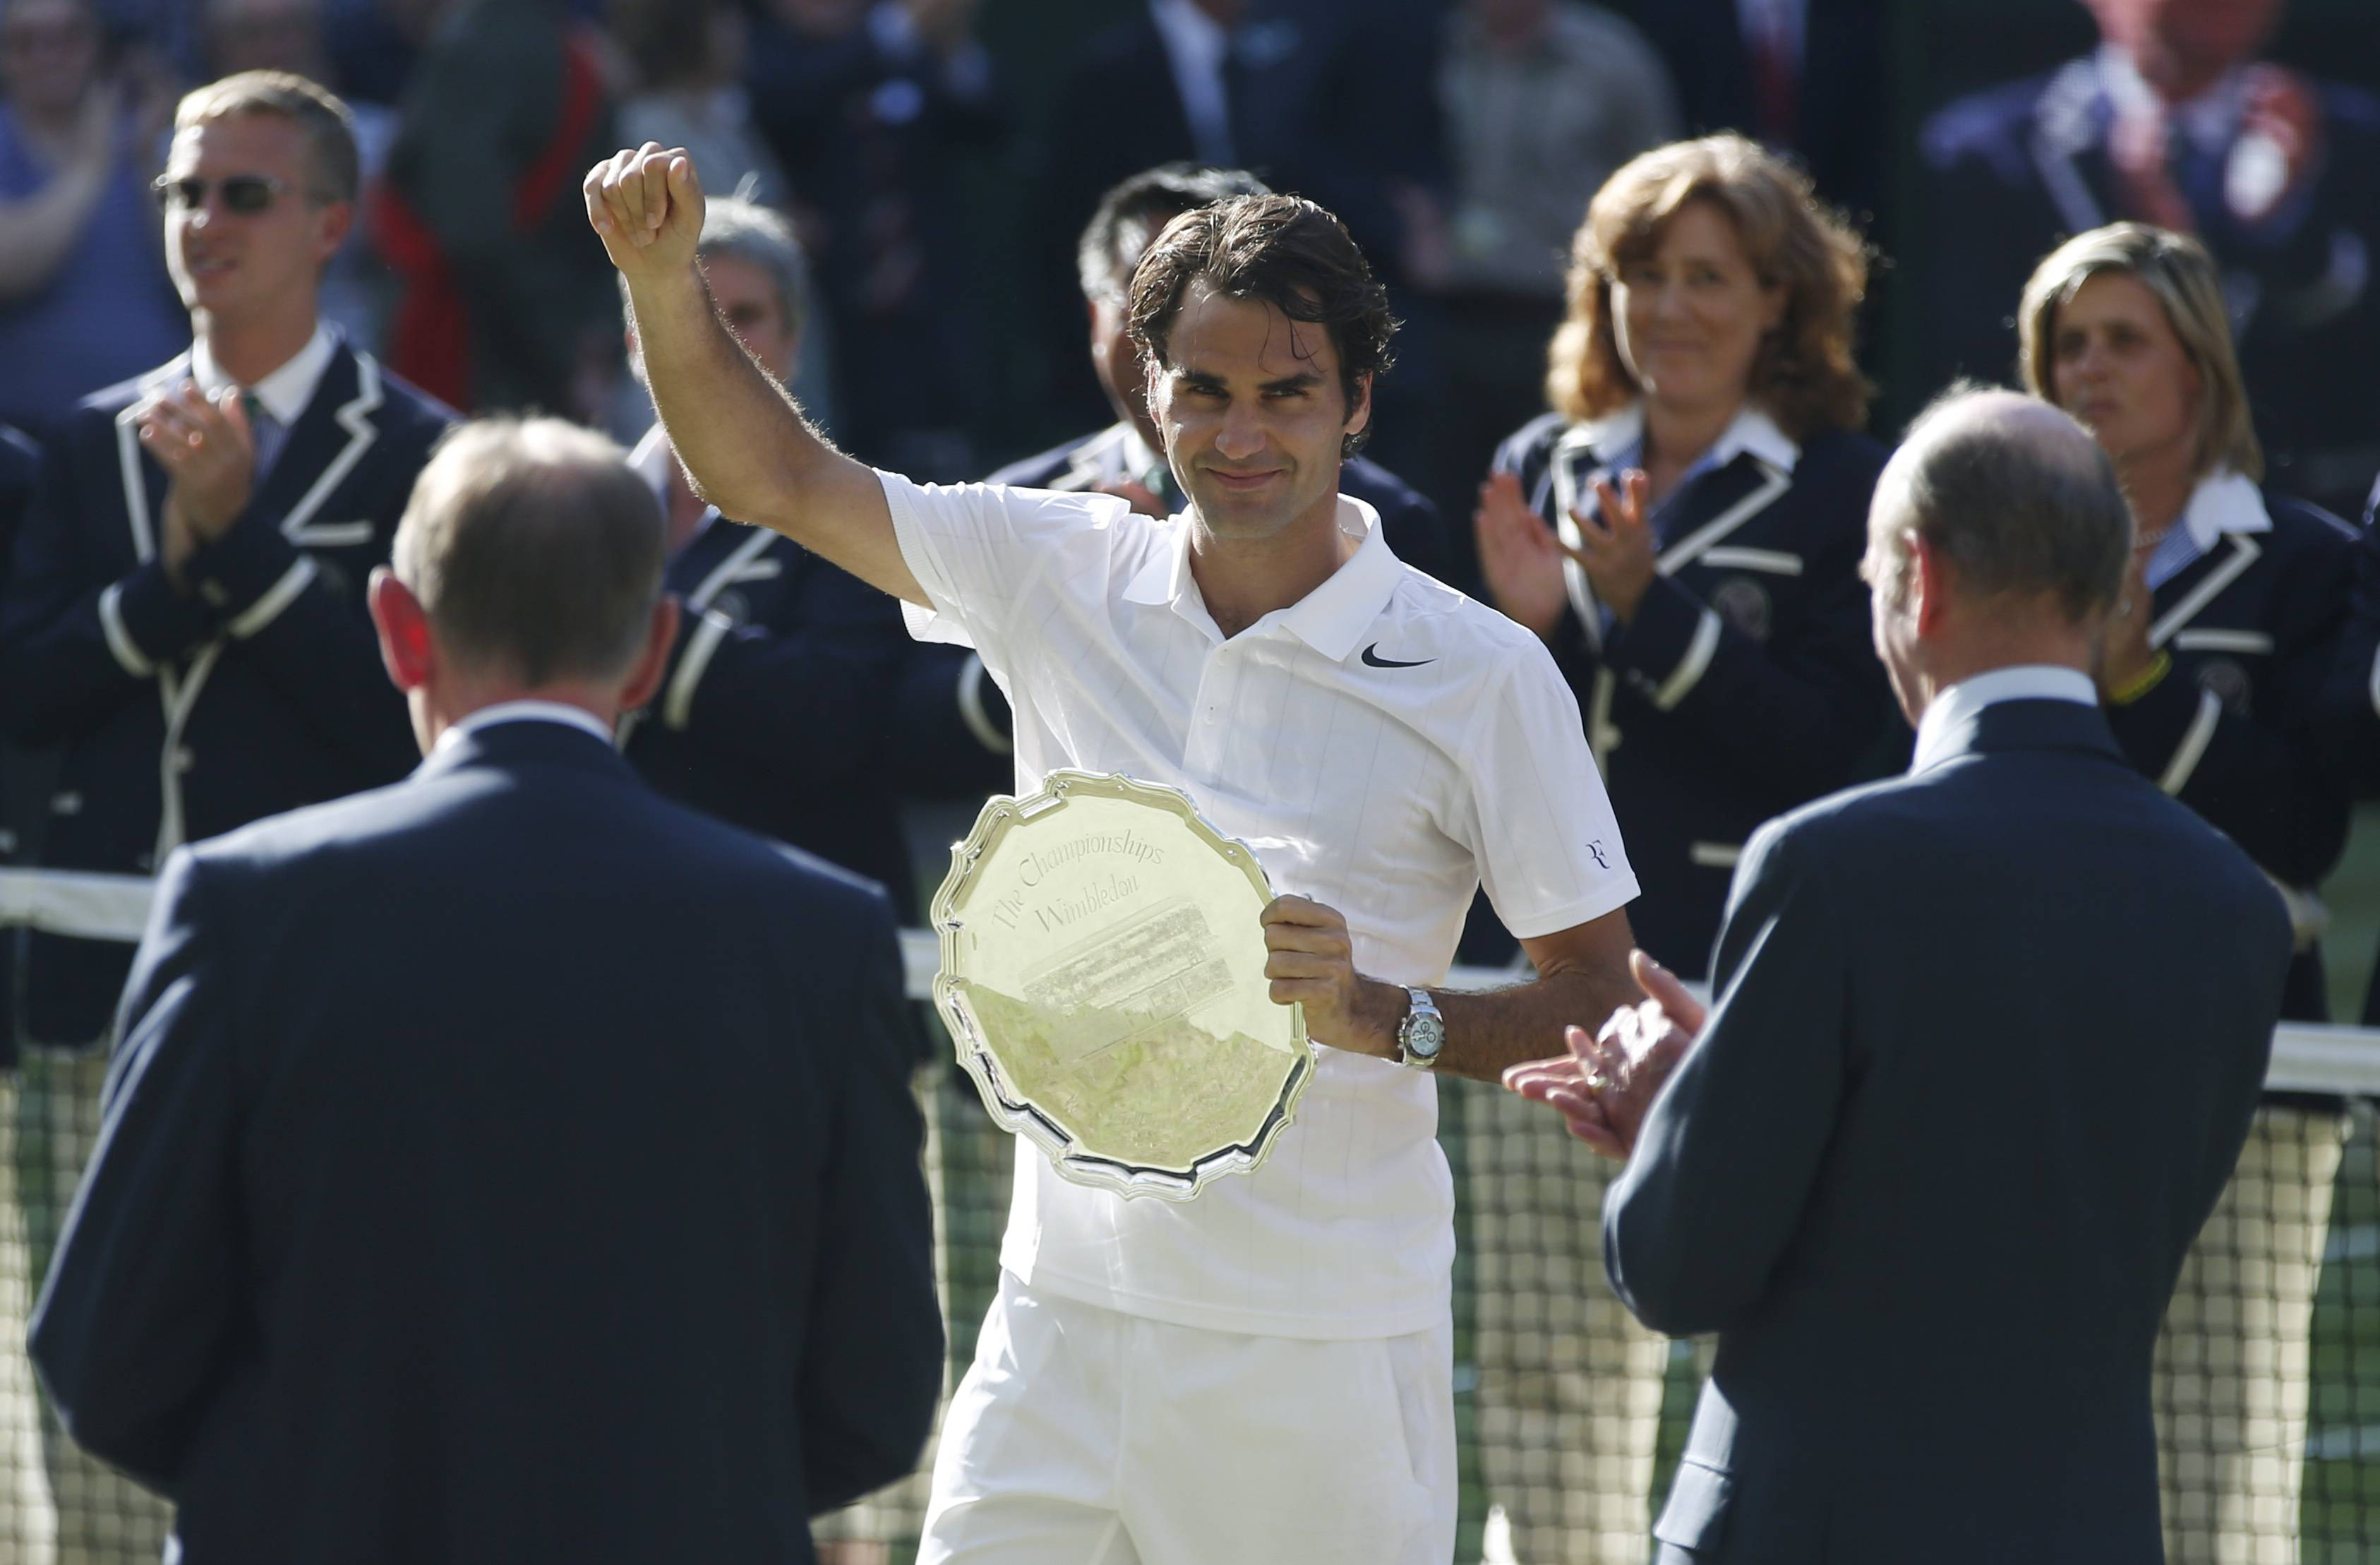 Roger Federer of Switzerland holds the runner up trophy after being defeated by Serbia's Novak Djokovic in the men's singles final at the All England Lawn Tennis Championships in Wimbledon, London, Sunday July 6, 2014.